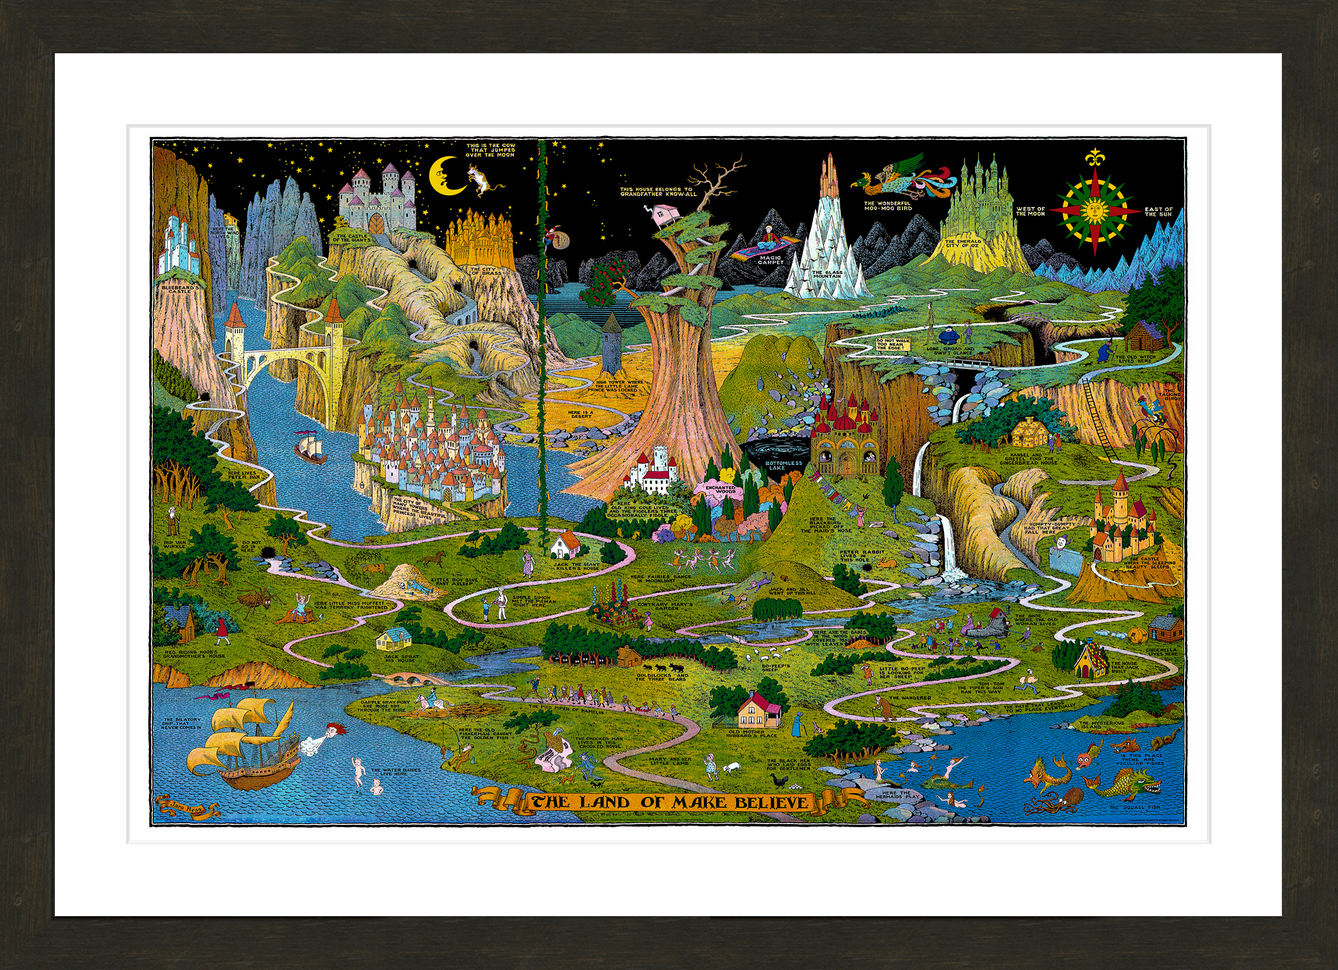 Home Rosen Ducat Imaging The Land Of Make Believe Map Fine Art Prints Art Prints Art Illustration